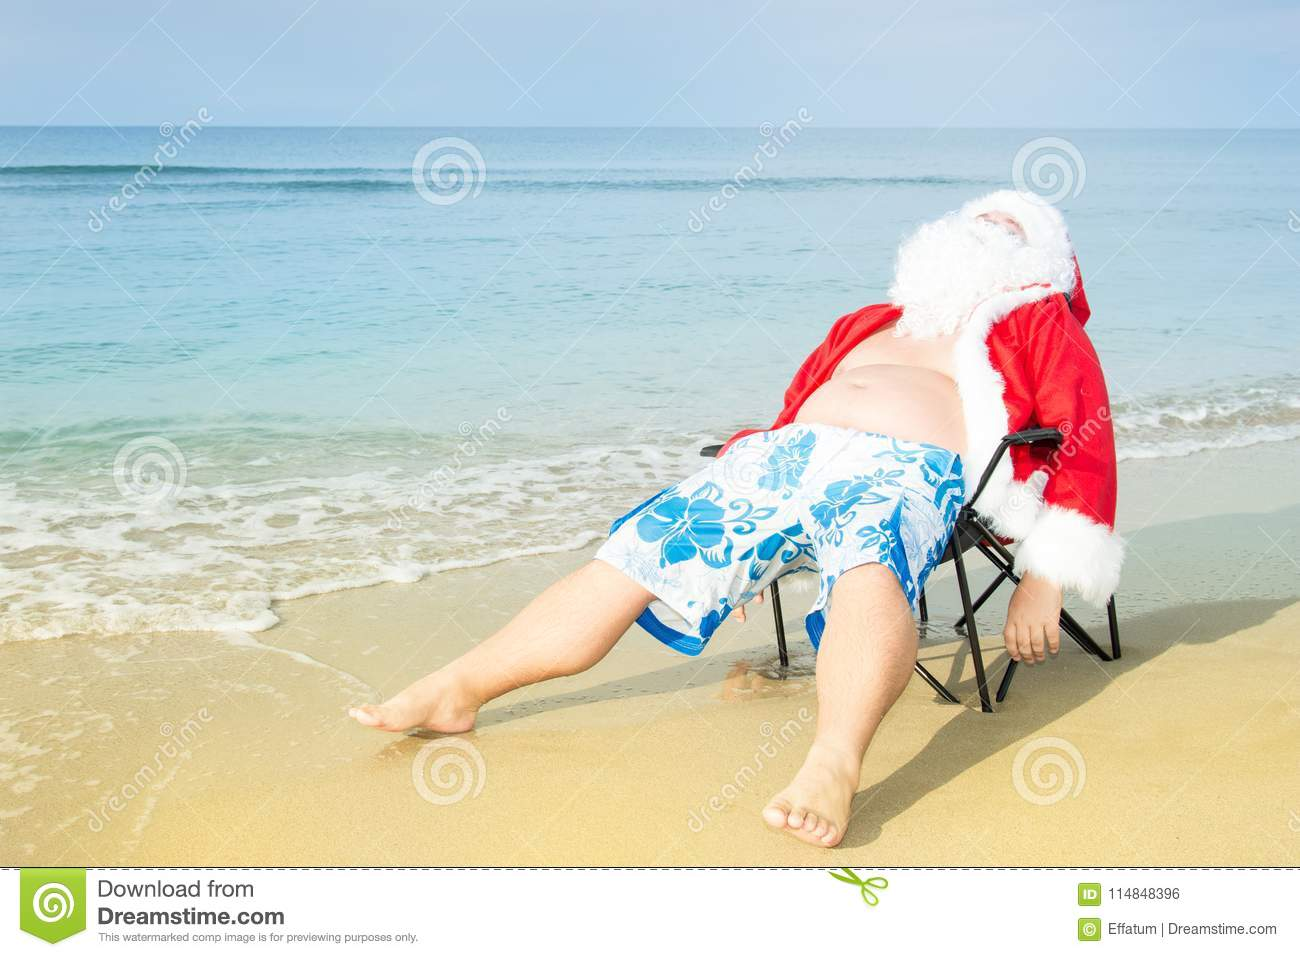 Beach Christmas.Funny Santa In Shorts On The Beach Christmas In The Tropics